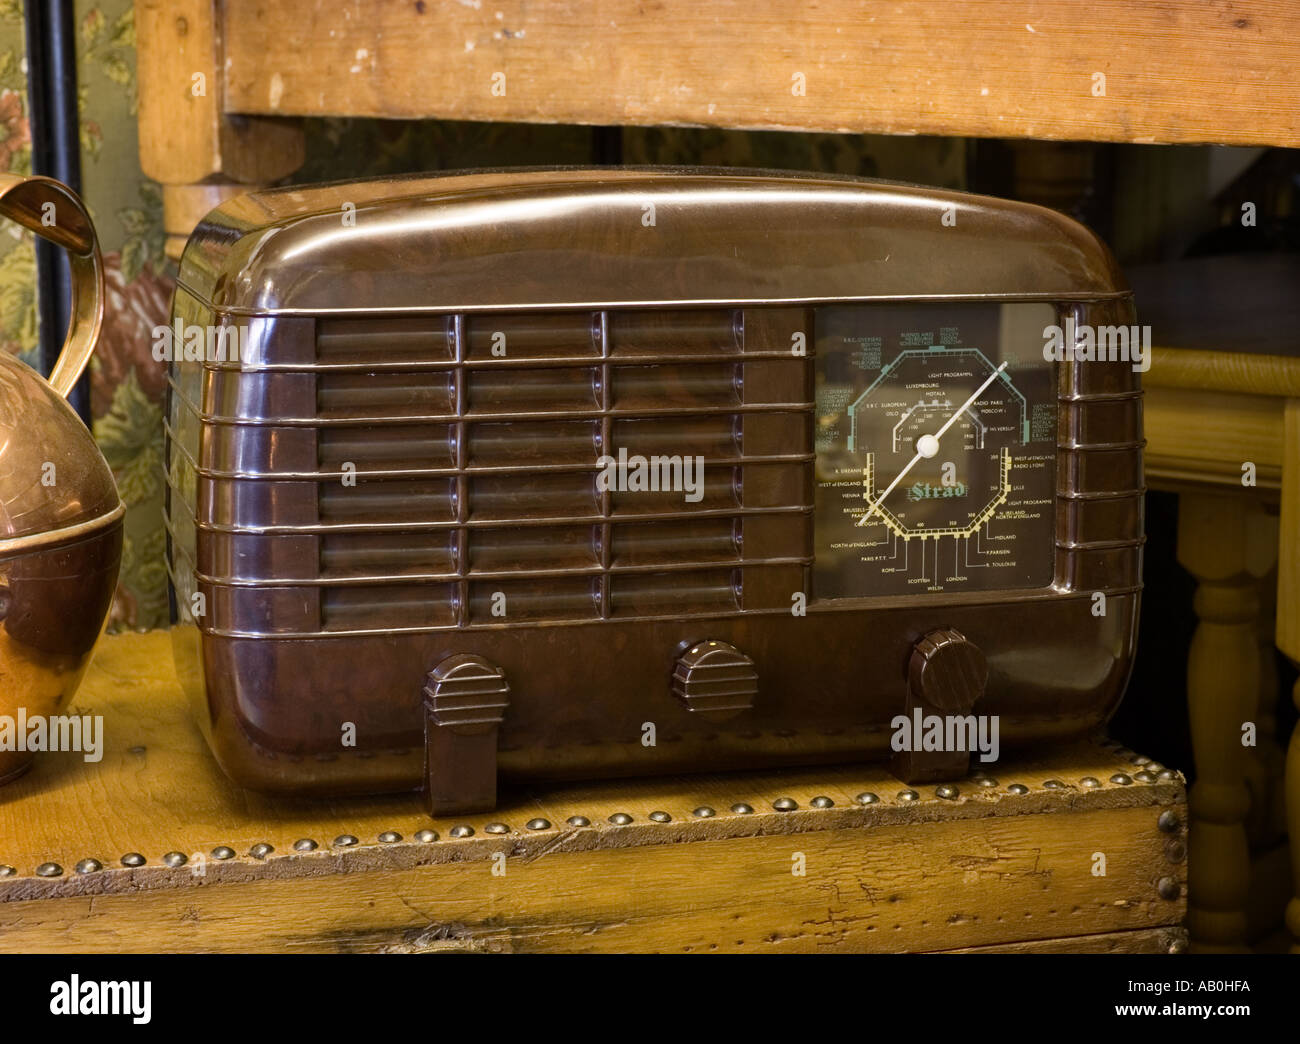 1946 Strad PW461 bakelite vintage radio receiver made by R.M.Electric UK - Stock Image